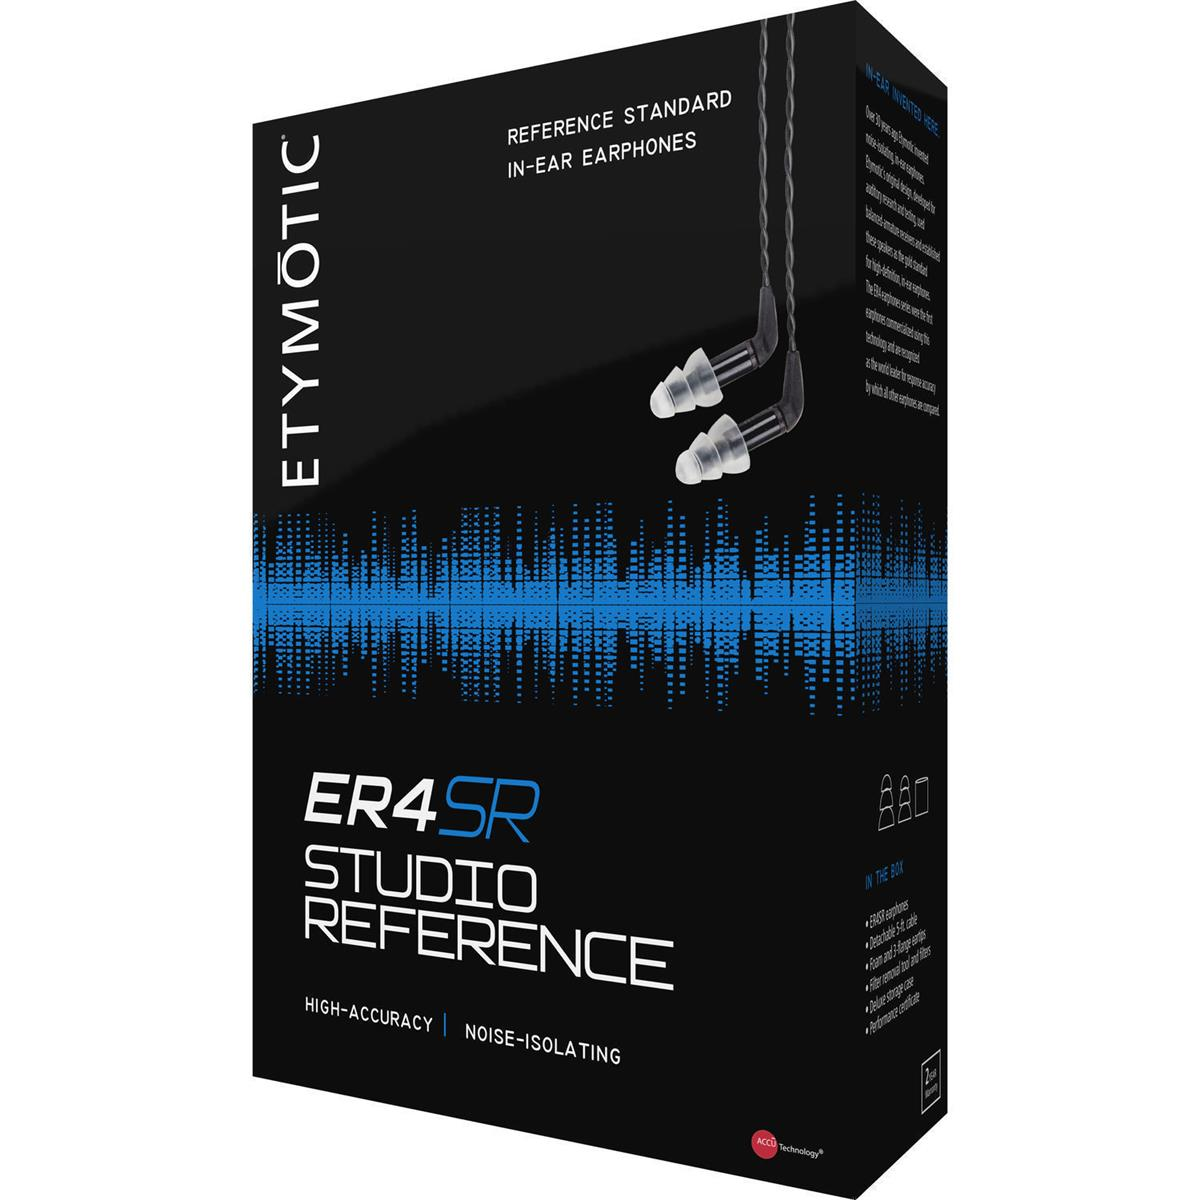 47% Off Etymotic Research Studio Reference In-Ear Earphones